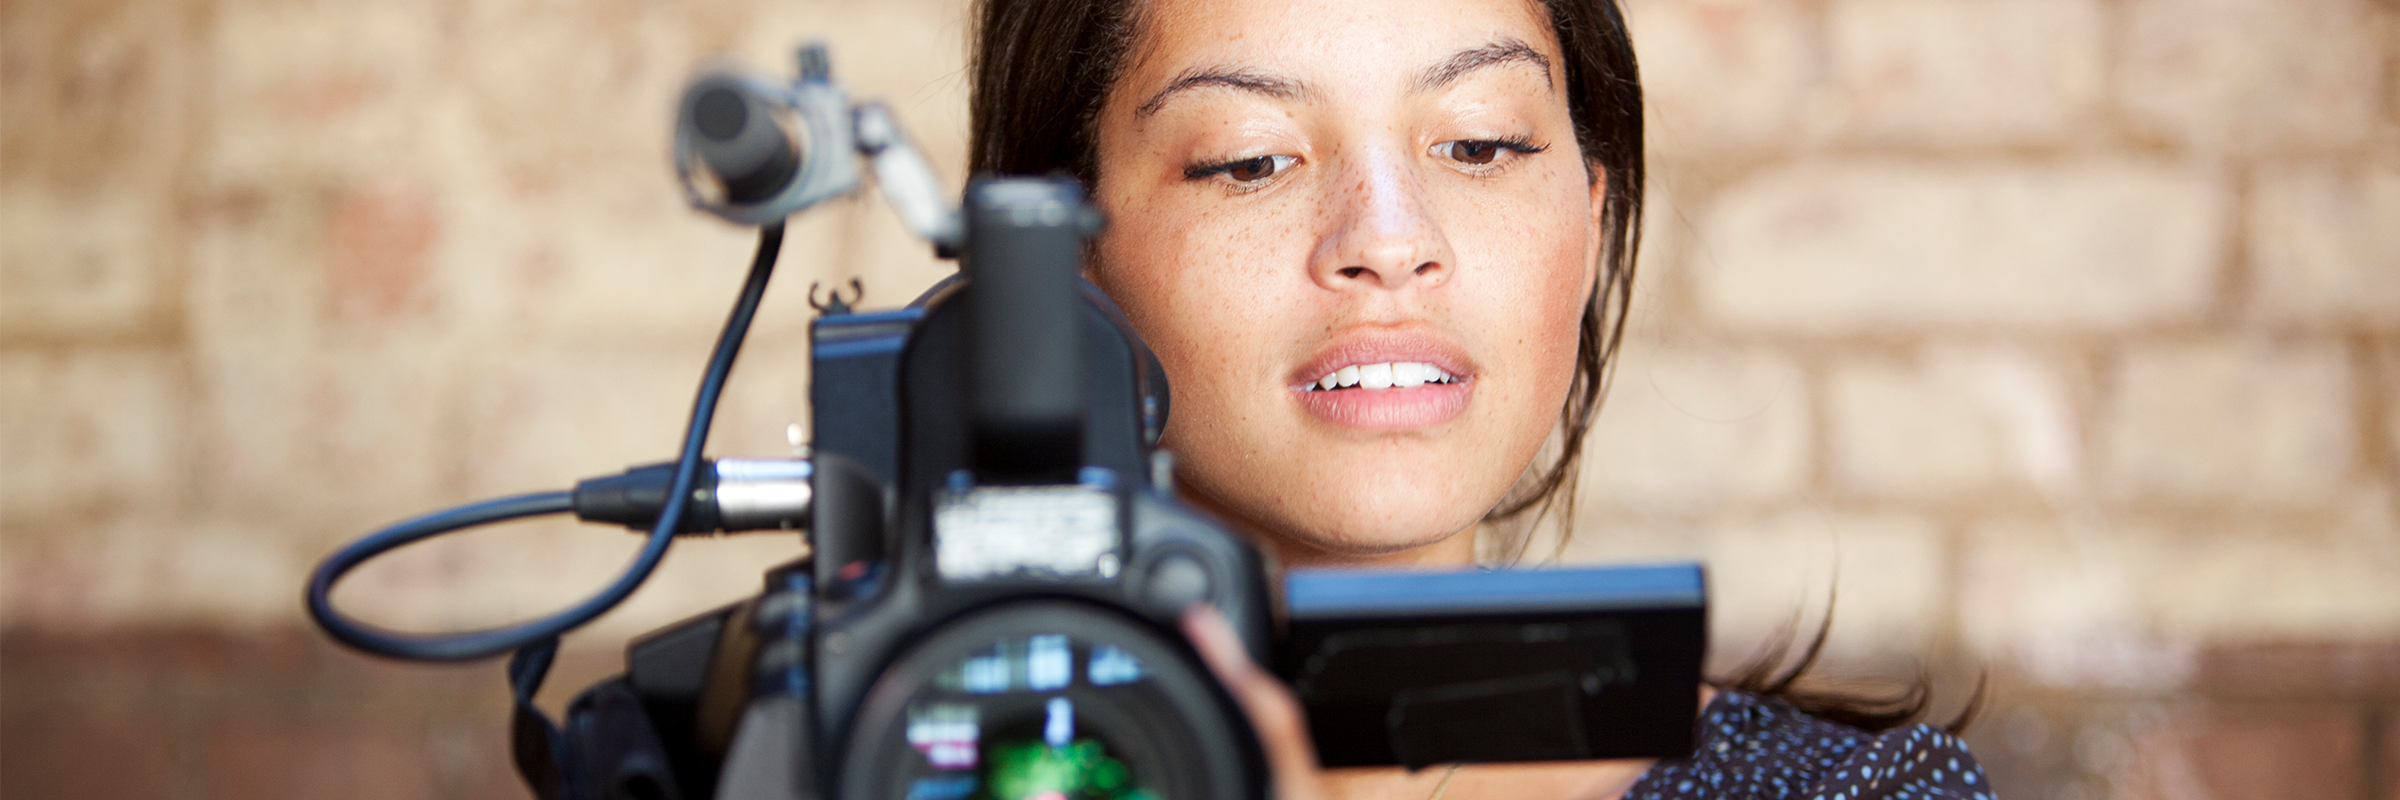 woman using a professional camera